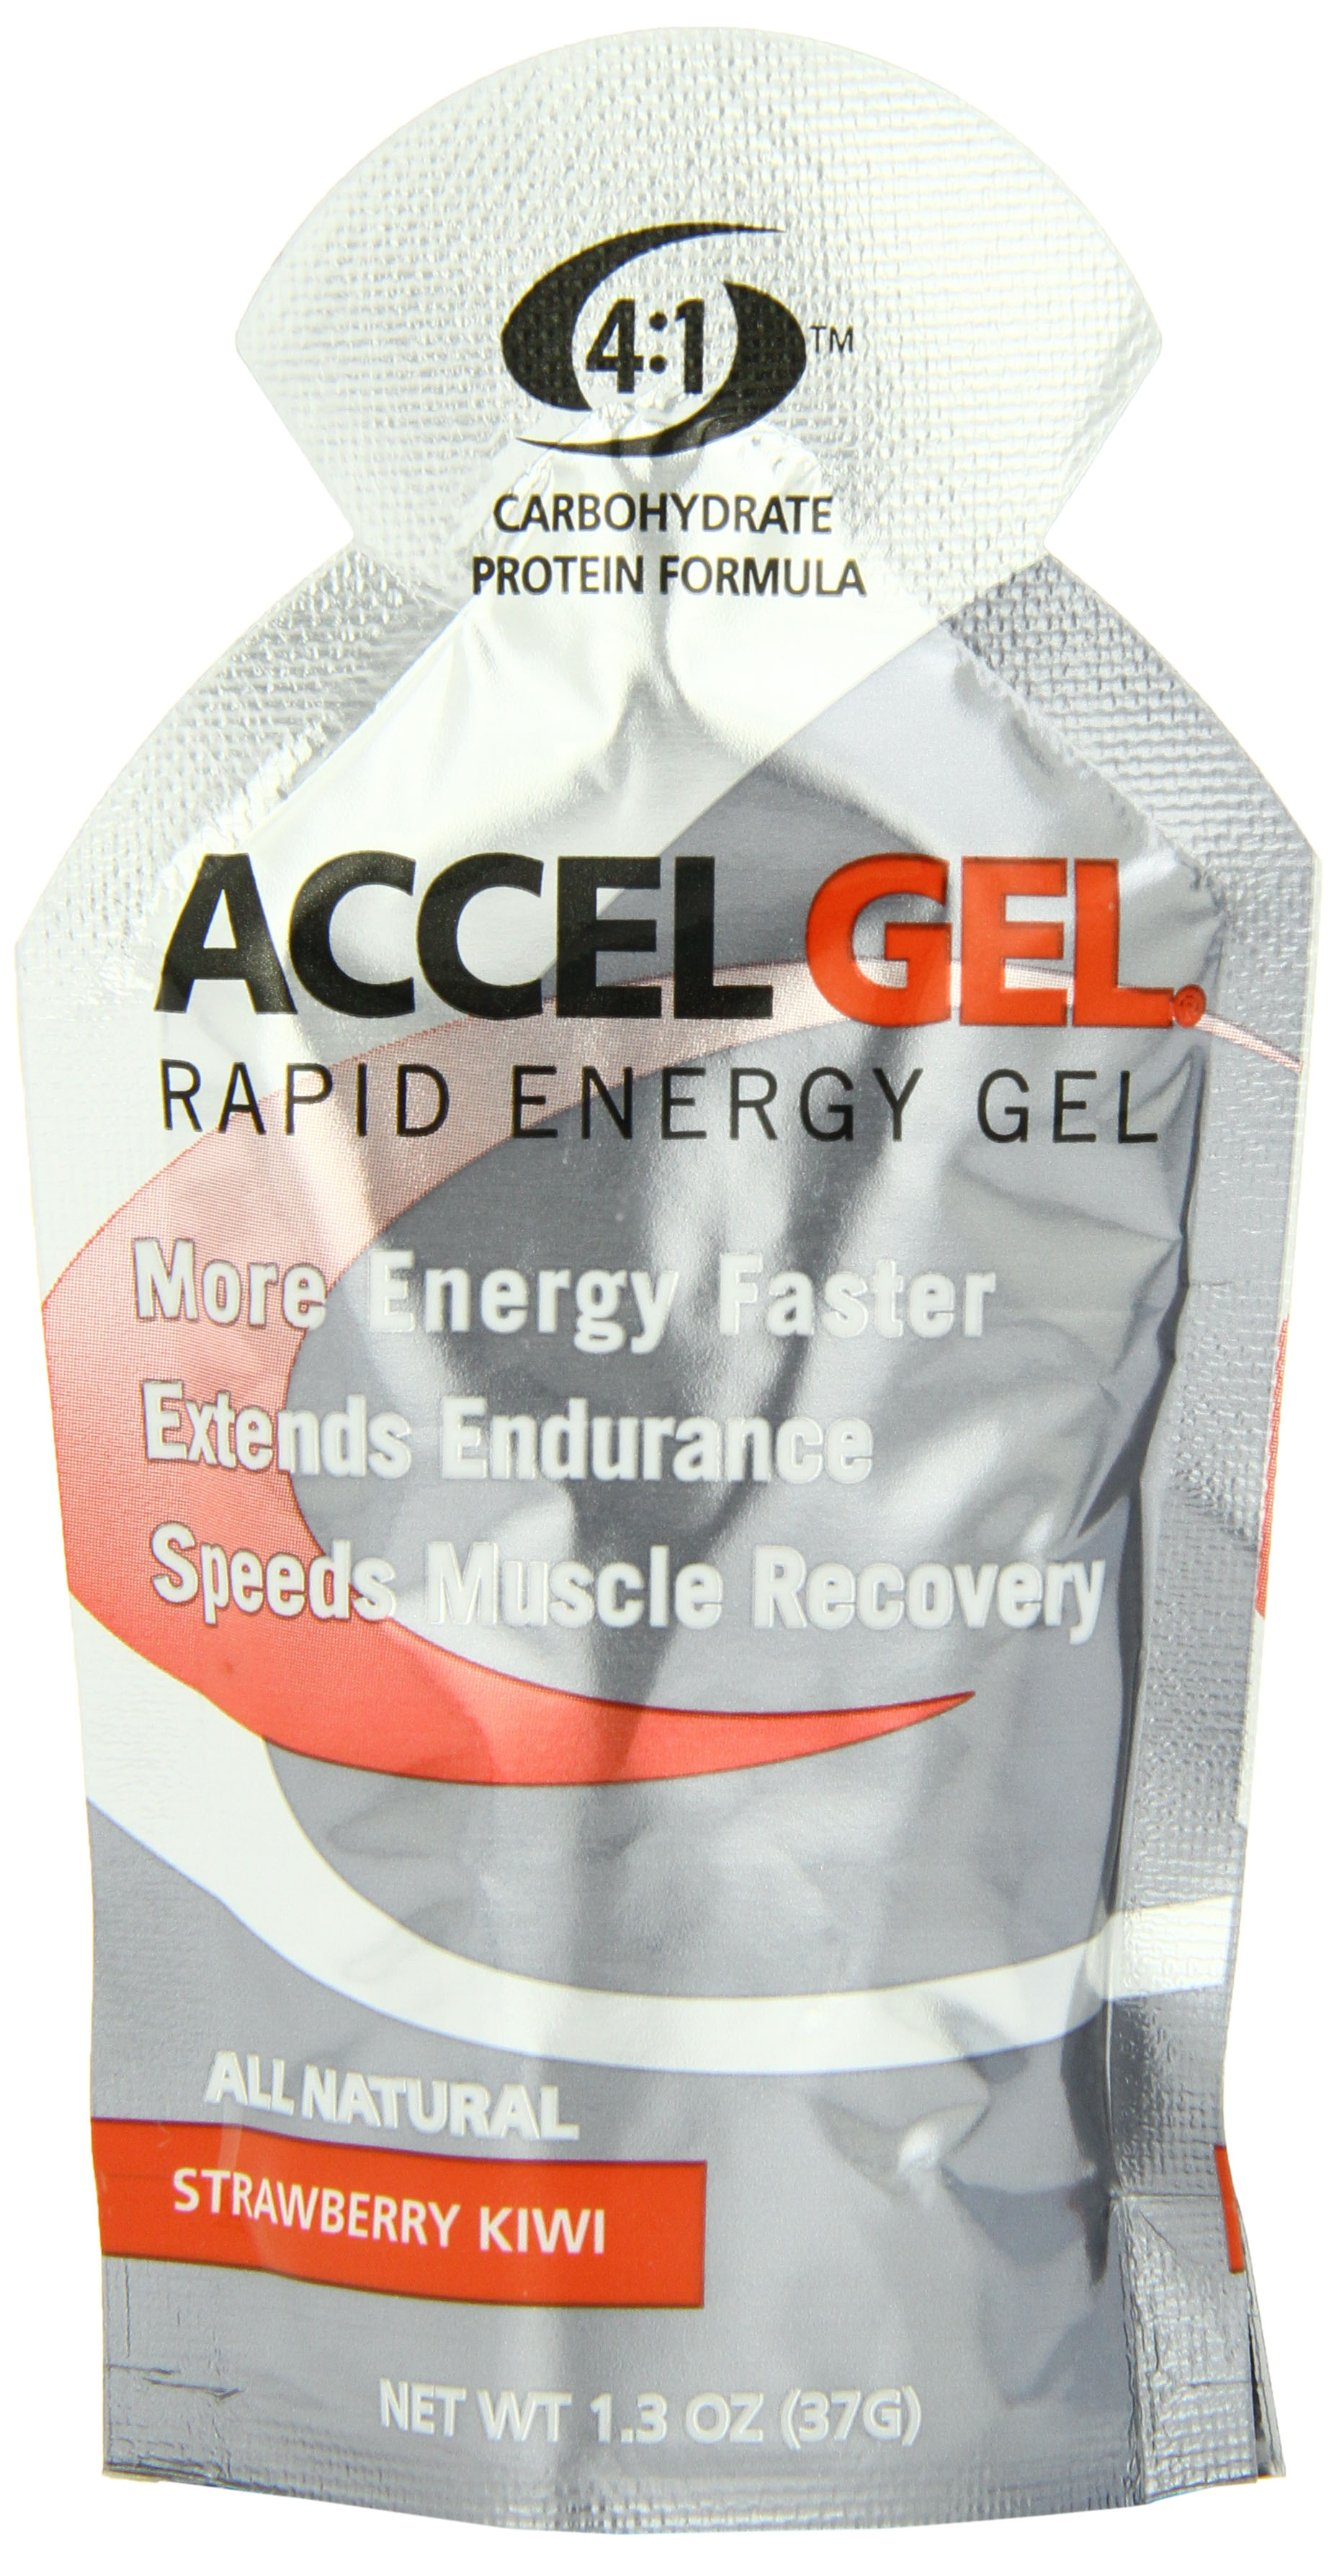 PacificHealth Accel Gel, All Natural Protein-Powered Rapid Energy Gel for Instant Energy During Intense Workouts - Box of 24, 1.3 Ounce Packets (Strawberry Kiwi)